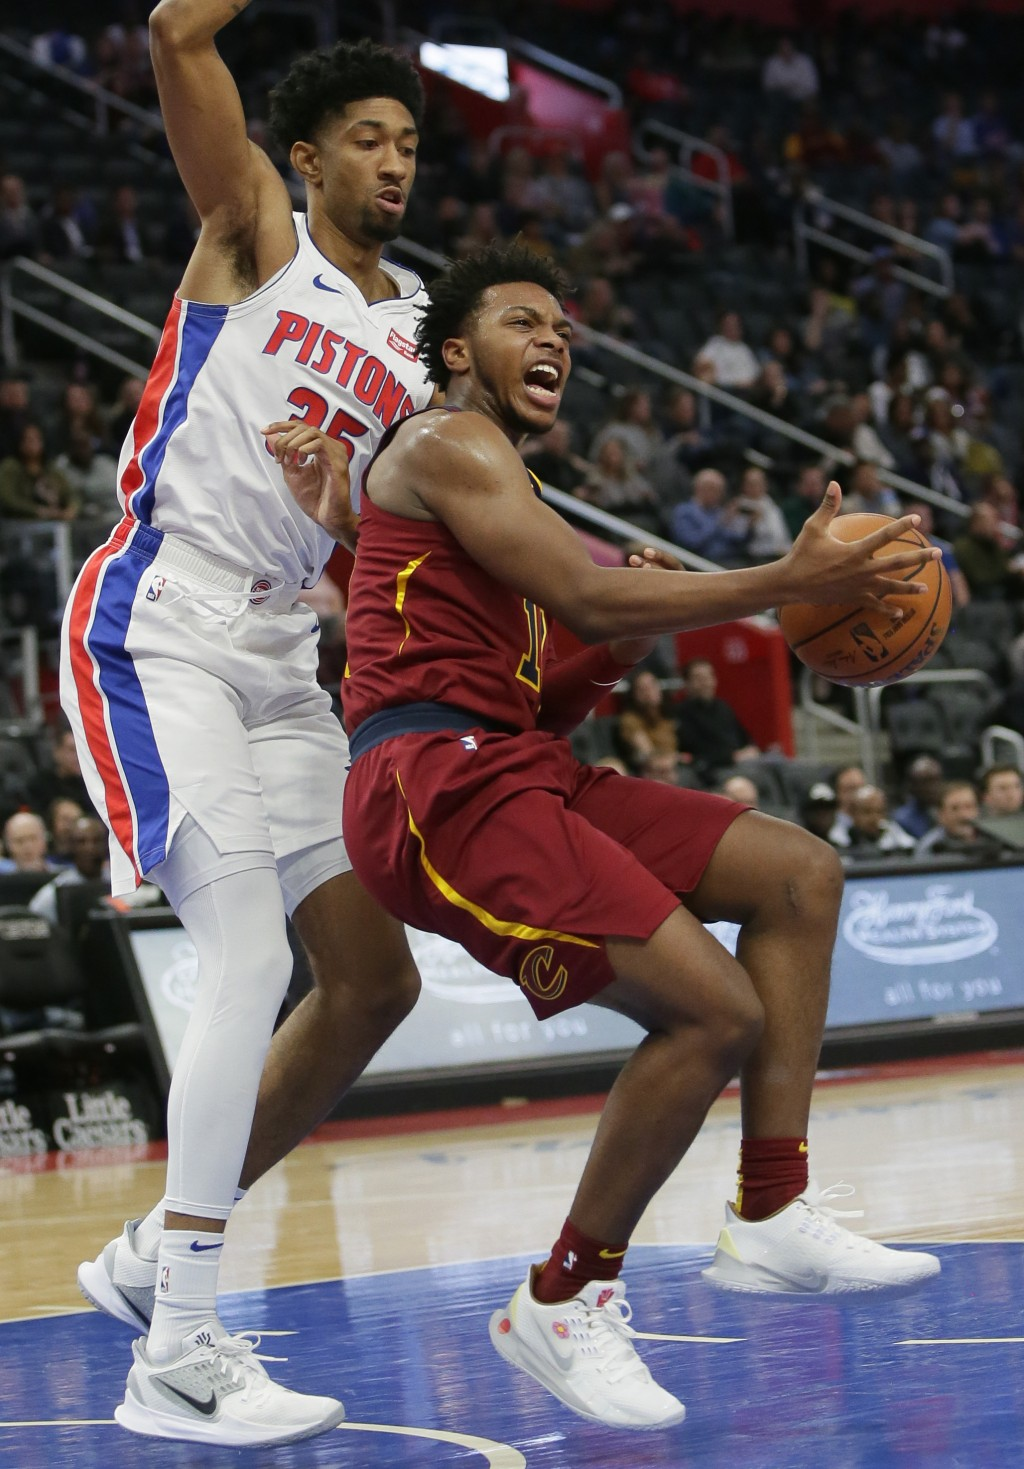 Cleveland Cavaliers guard Darius Garland (10) collides with Detroit Pistons forward Christian Wood (35) while going to the basket during the first hal